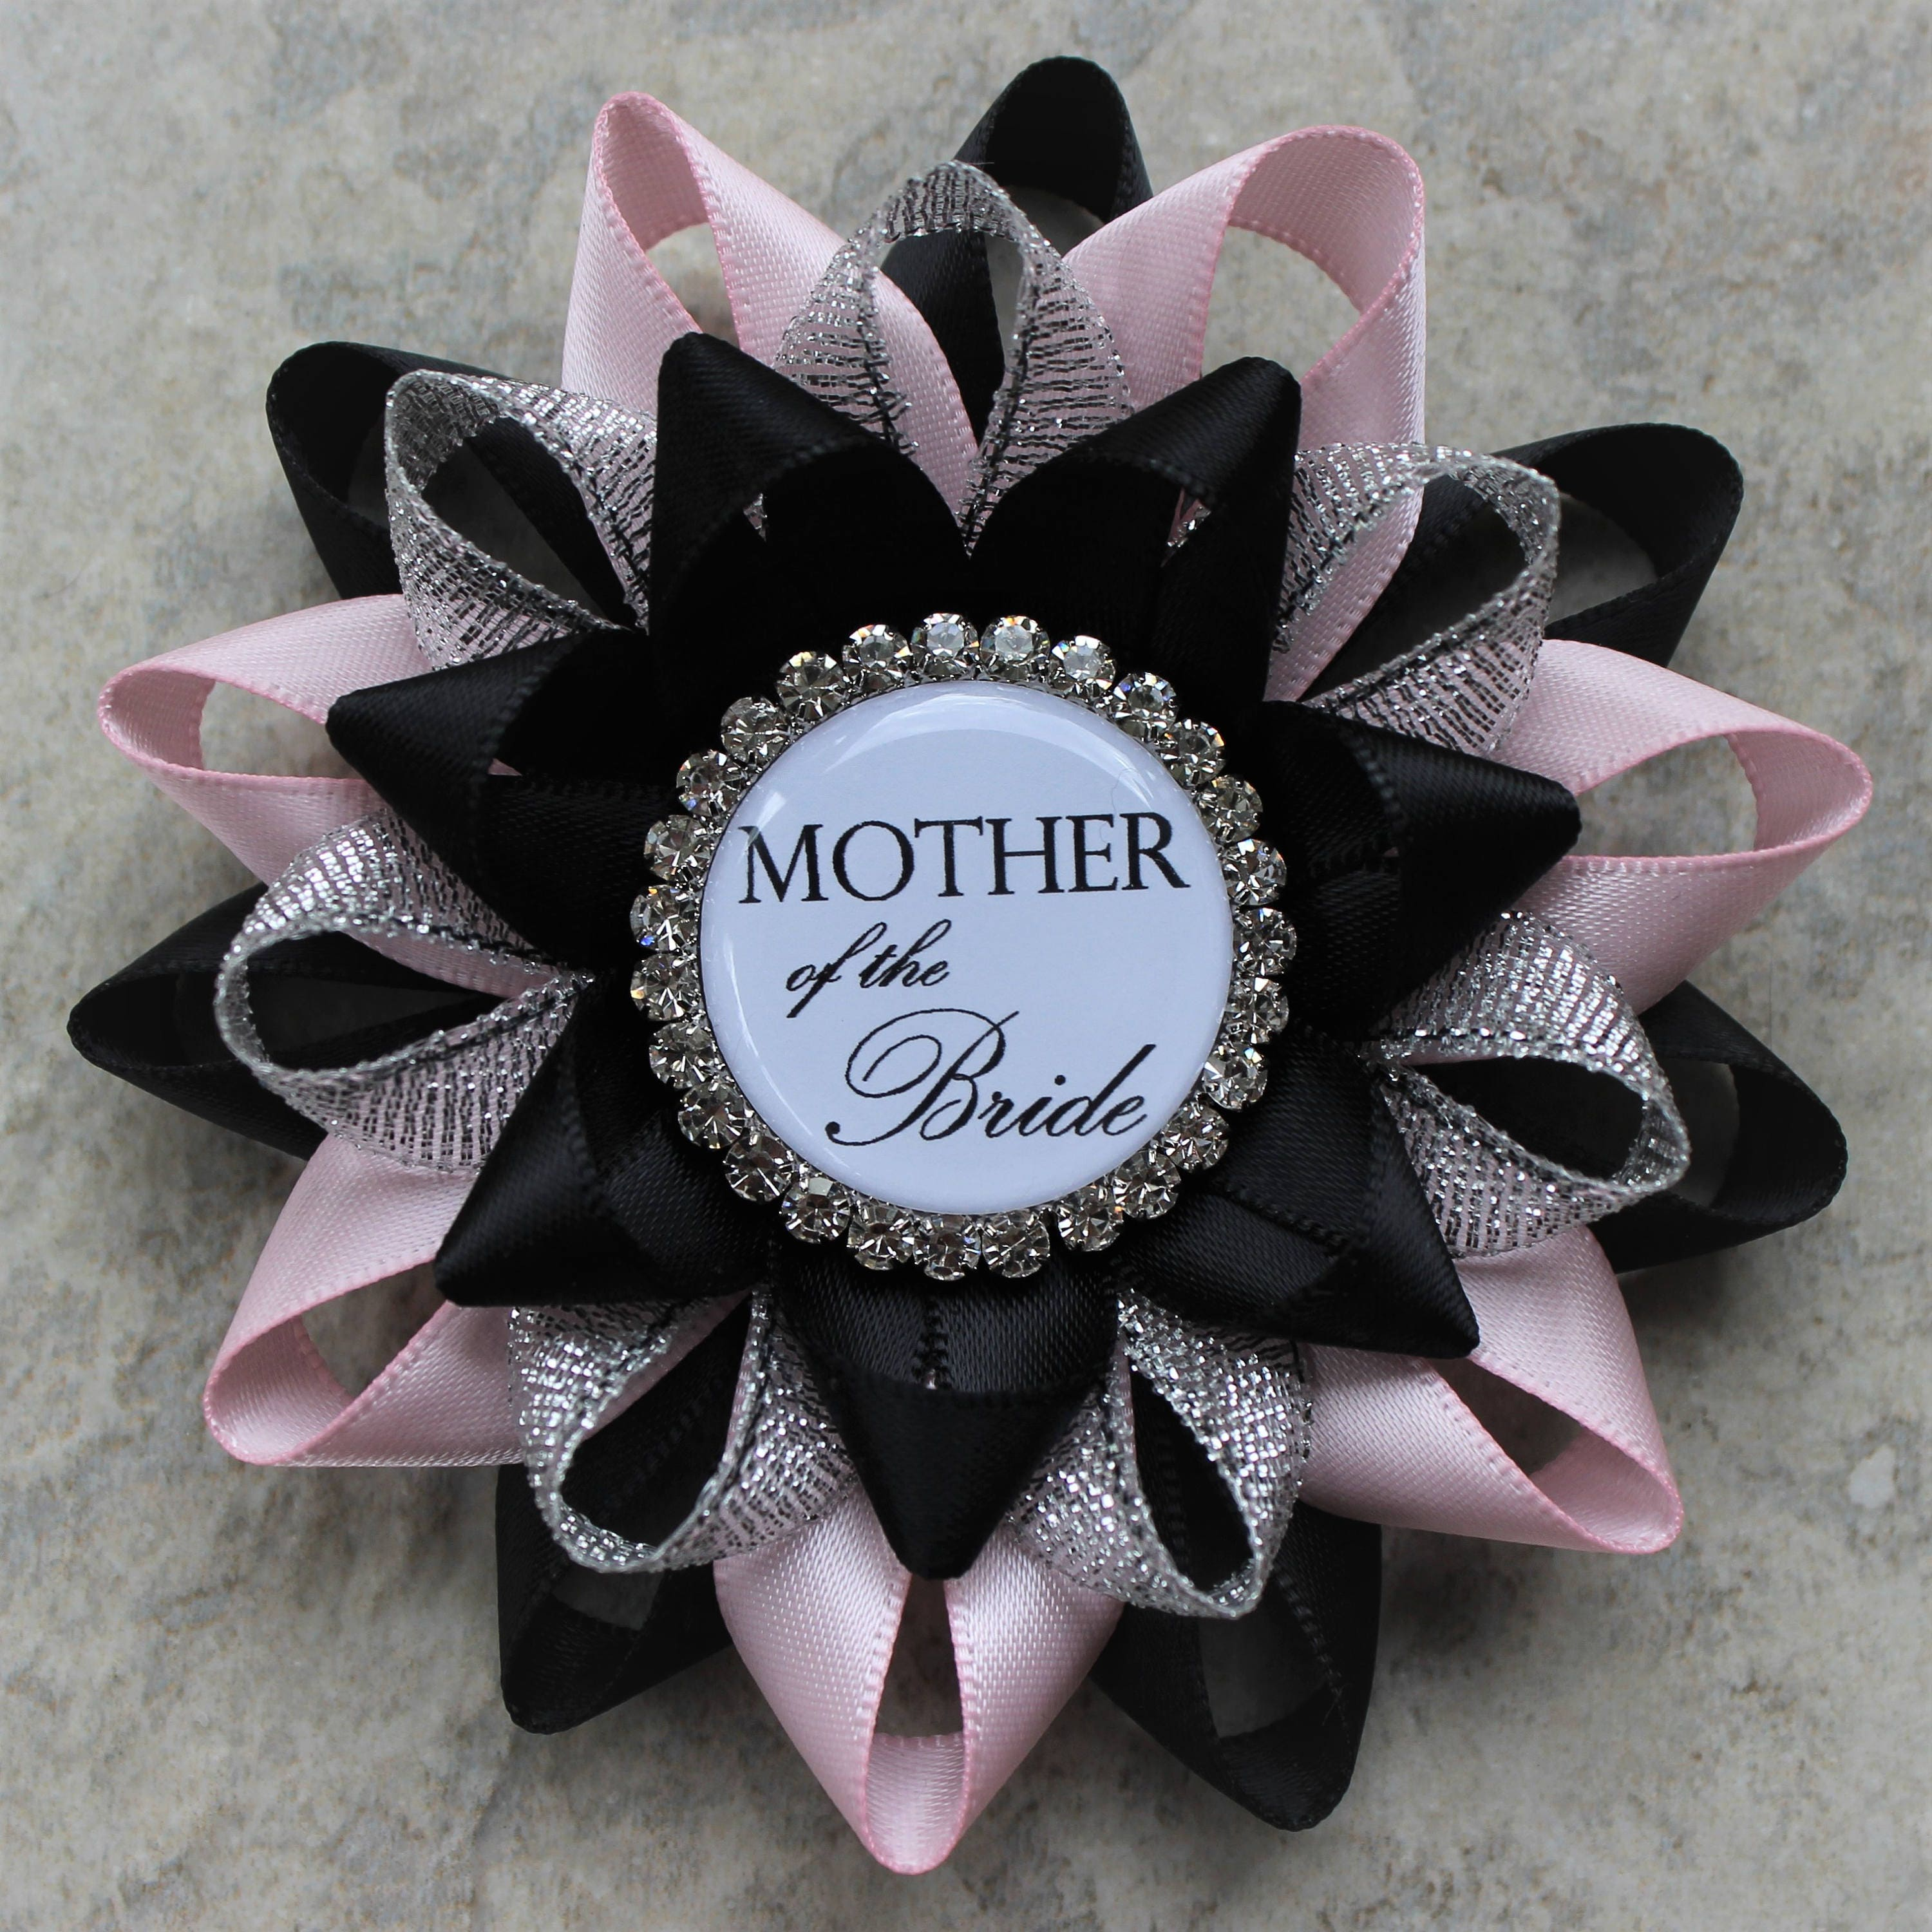 Bridal Shower Decorations Pink And Black Bridal Shower Corsage Pins